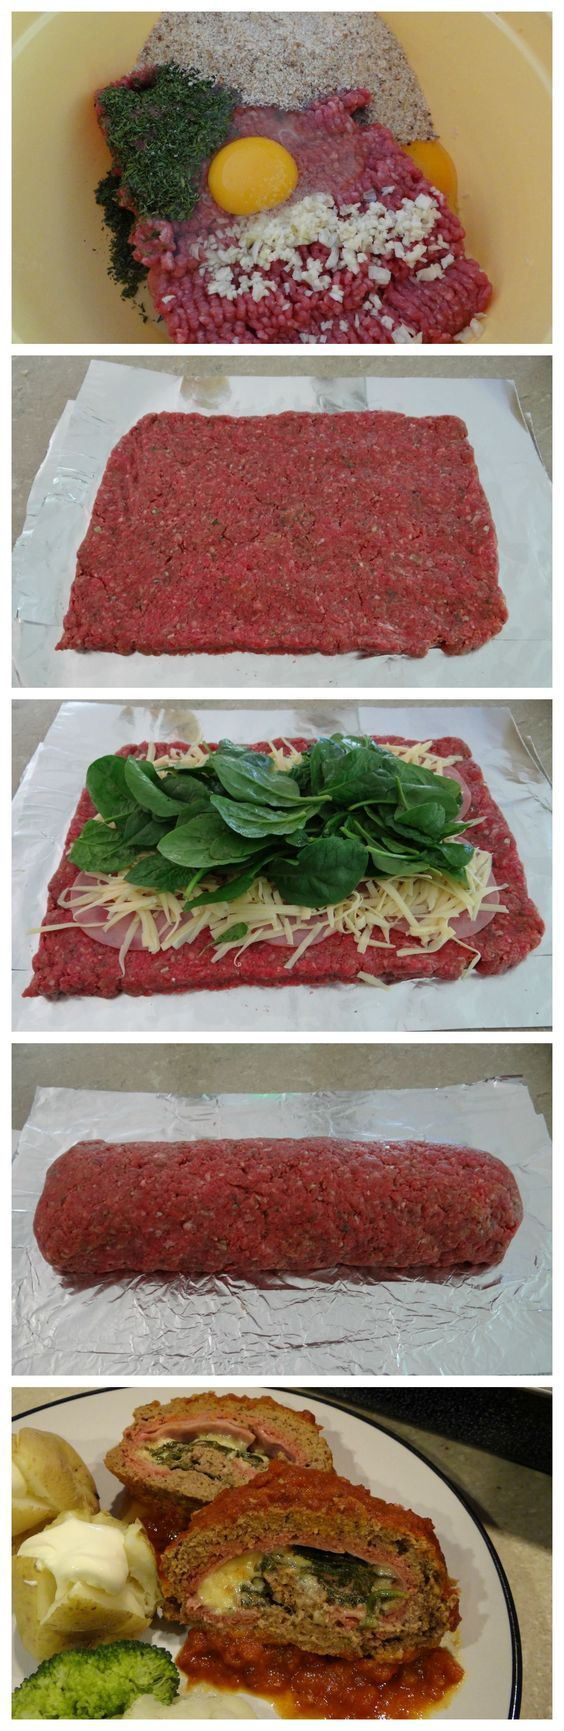 Rolled Meatloaf With Ham, Cheese & Spinach